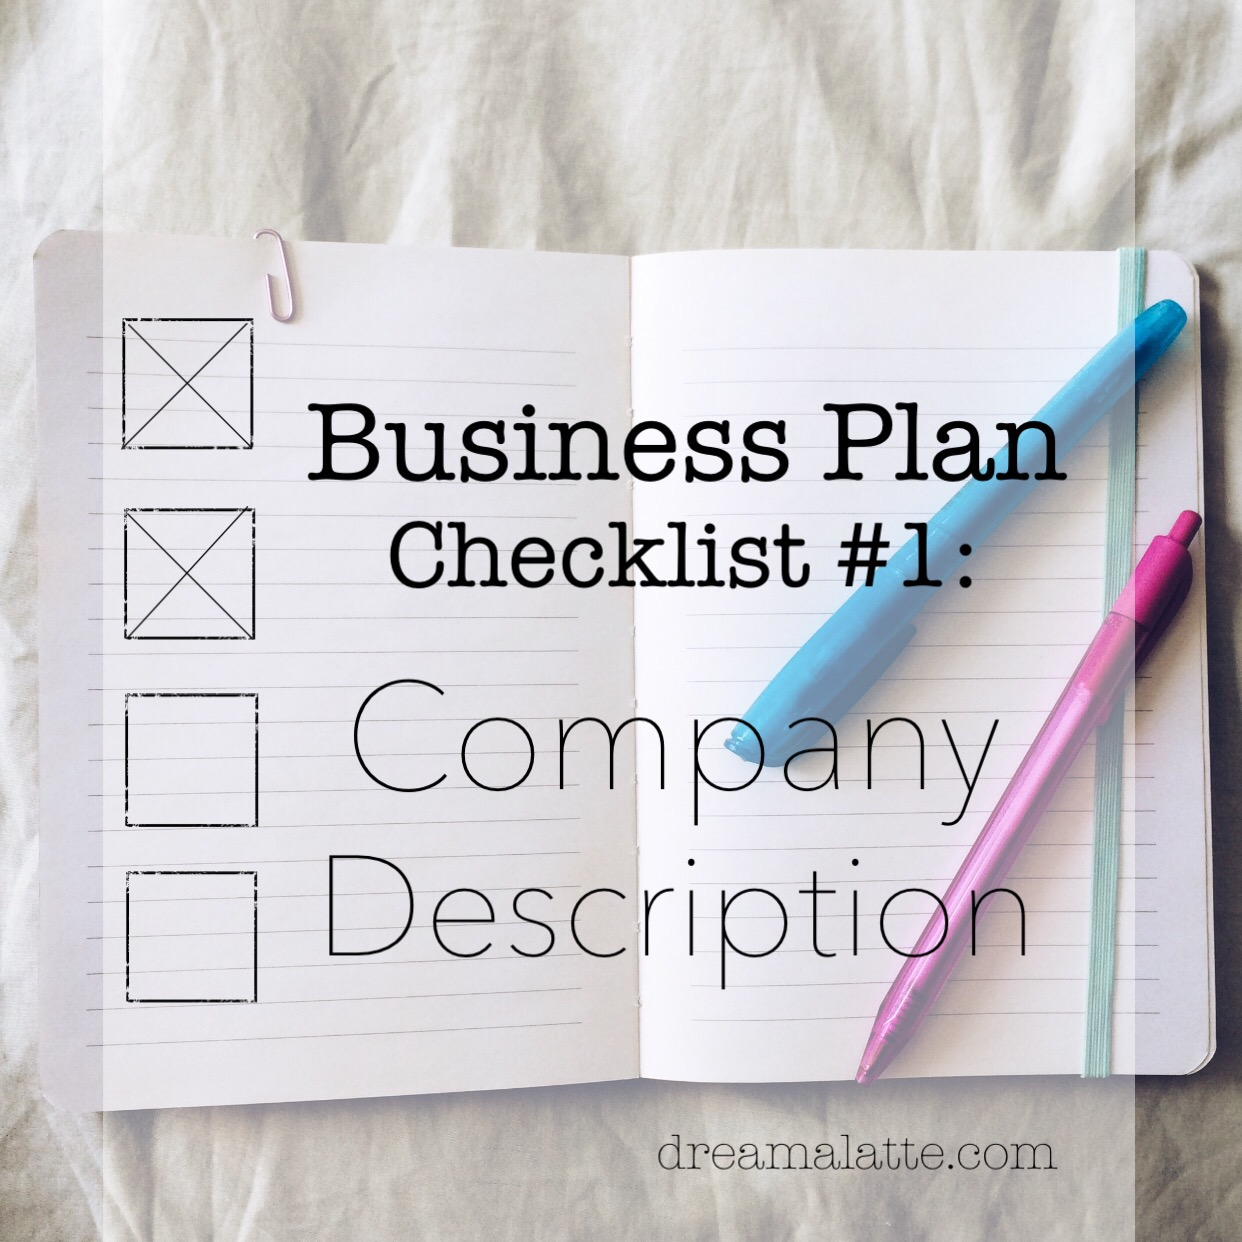 Where can you get help putting together a business plan